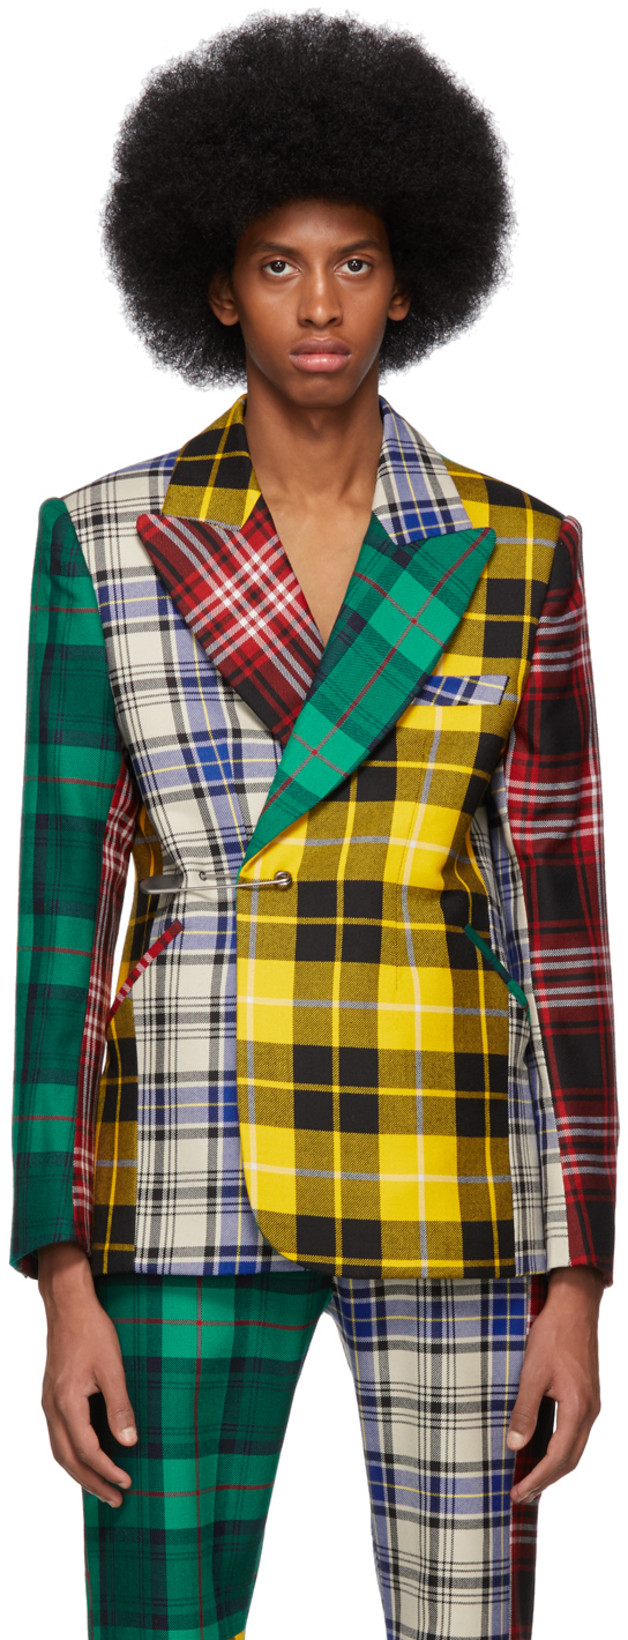 Charles Jefferey Loverboy - Multicolor Suit (jacket)/ $689Business in the shape but party in the pattern - this suit jacket is certain to make statement!